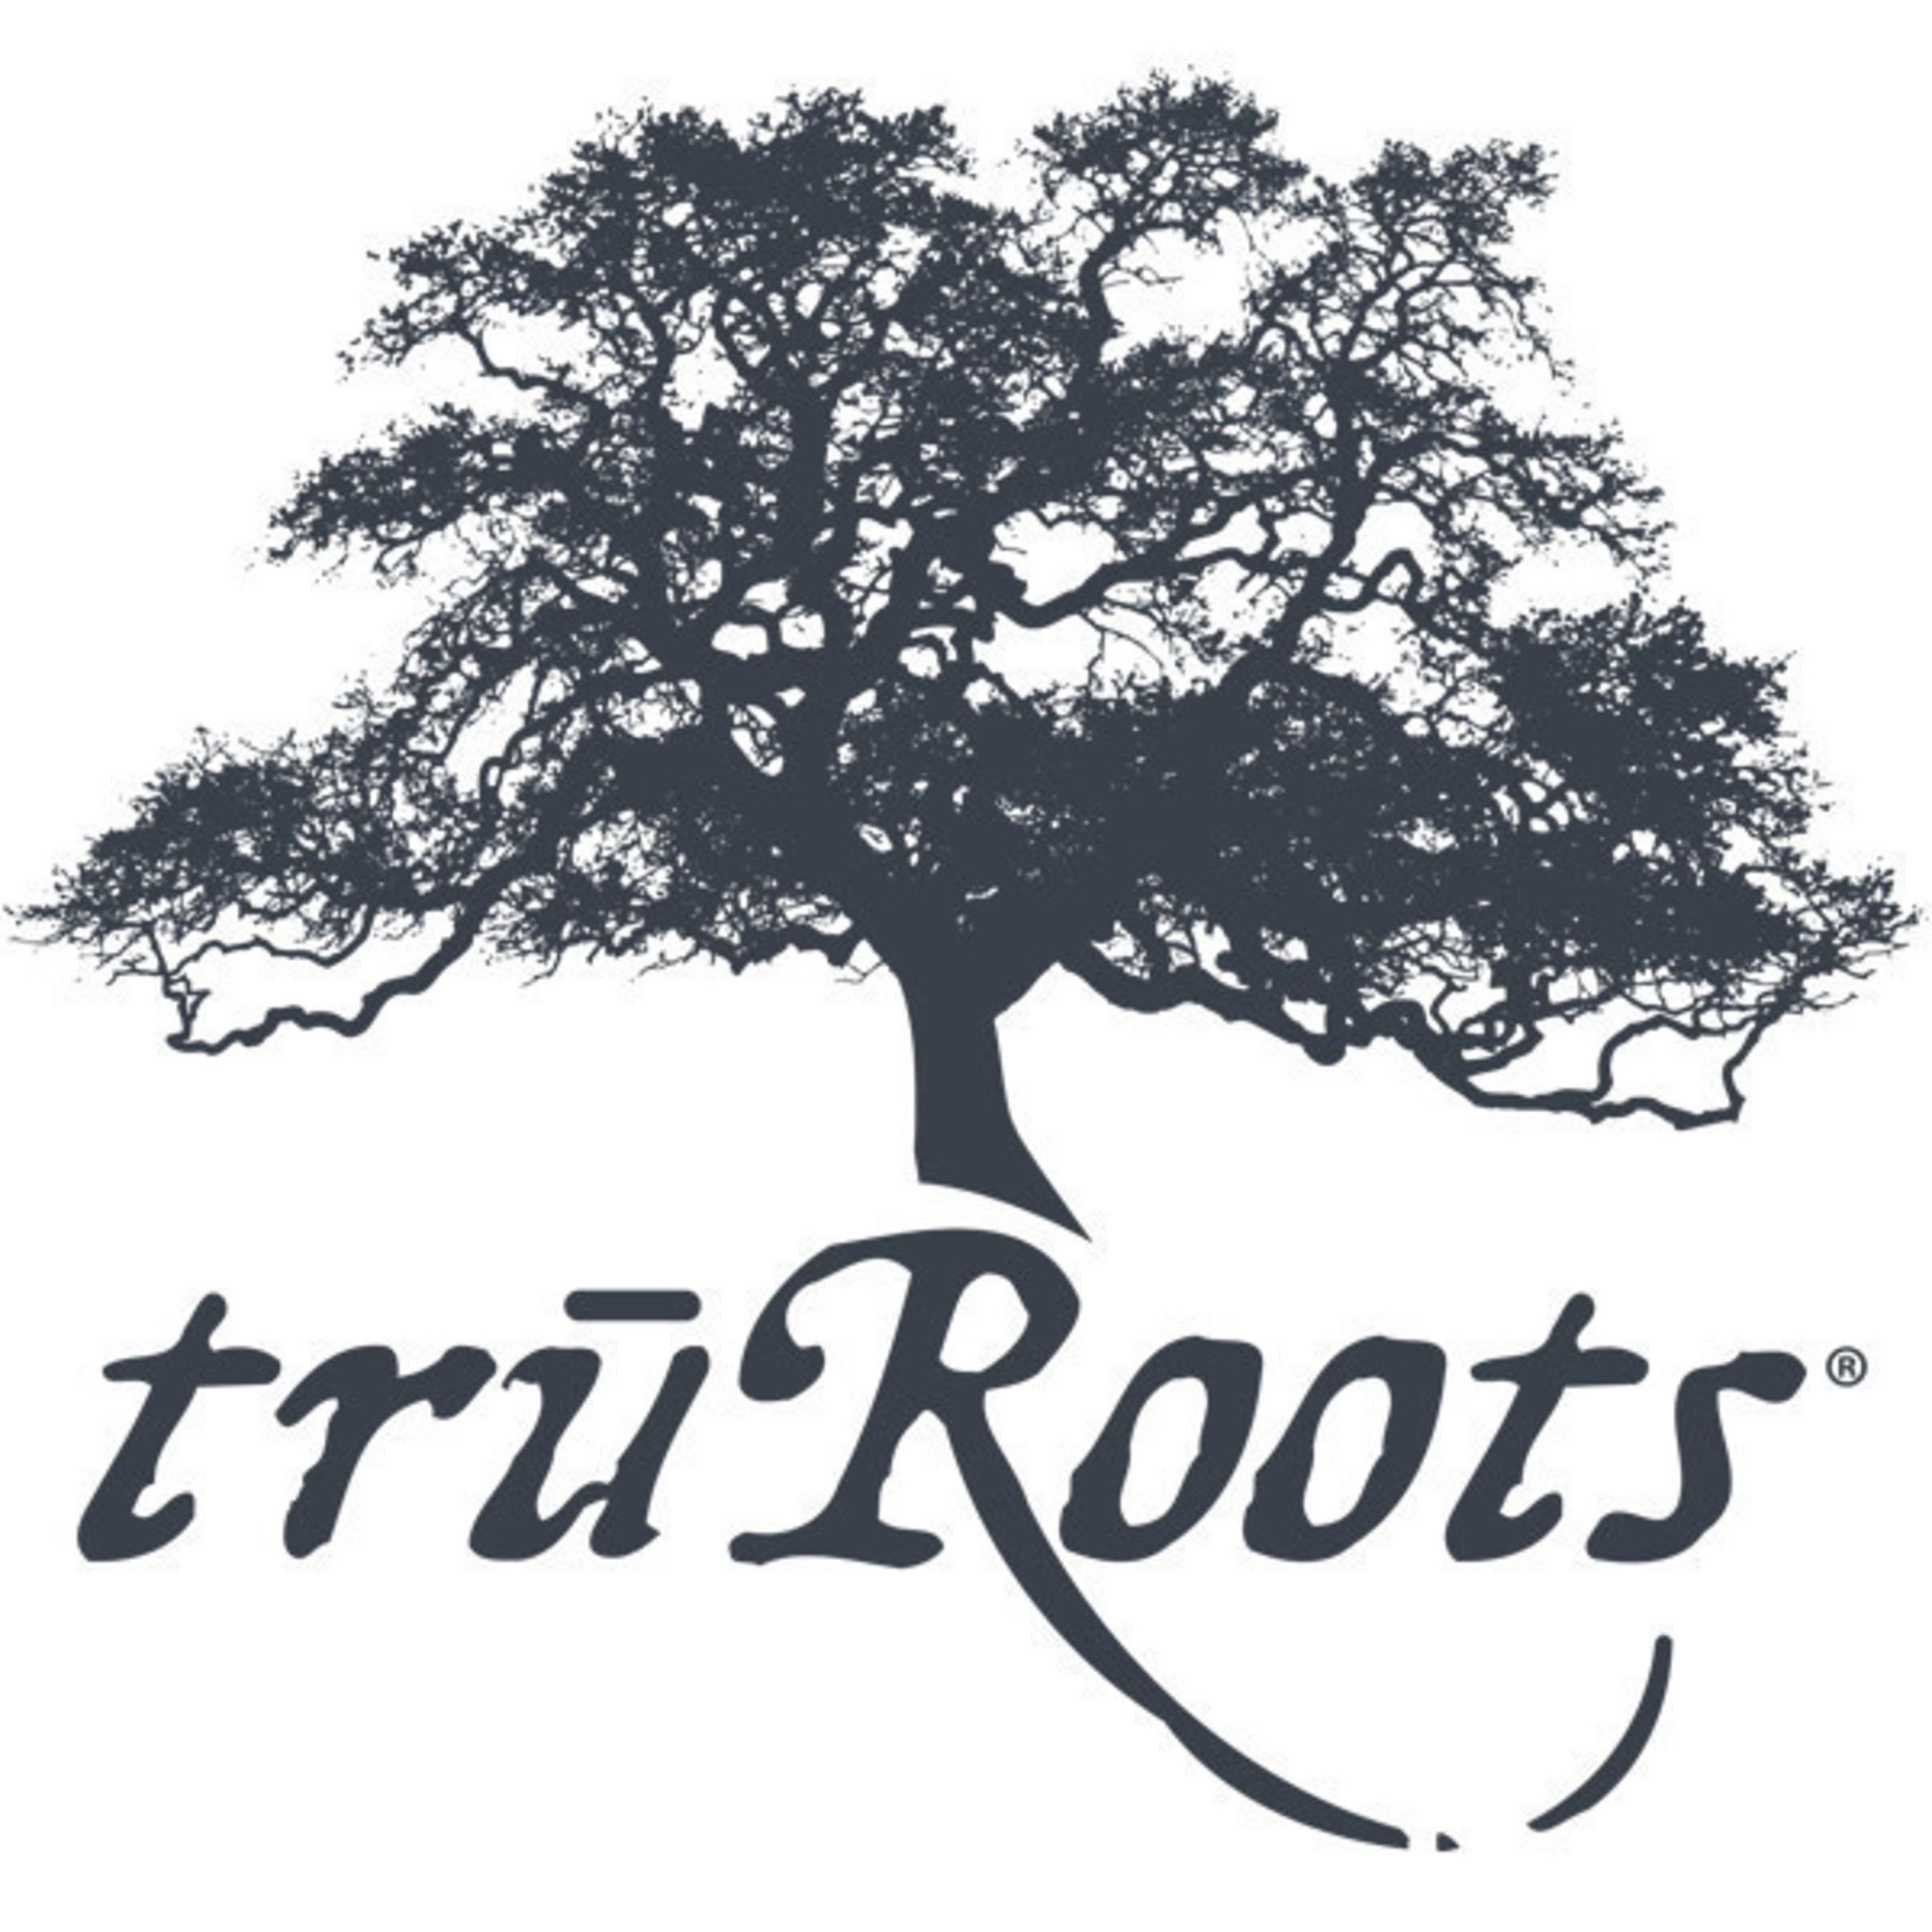 The truRoots(R) brand was founded on the philosophy that people should understand not only what's in their food, but where that food comes from. That's why truRoots forges personal connections with farmers and supports techniques that are rooted in tradition. These commitments have helped truRoots become a leader in the whole grains and sprouted foods category.